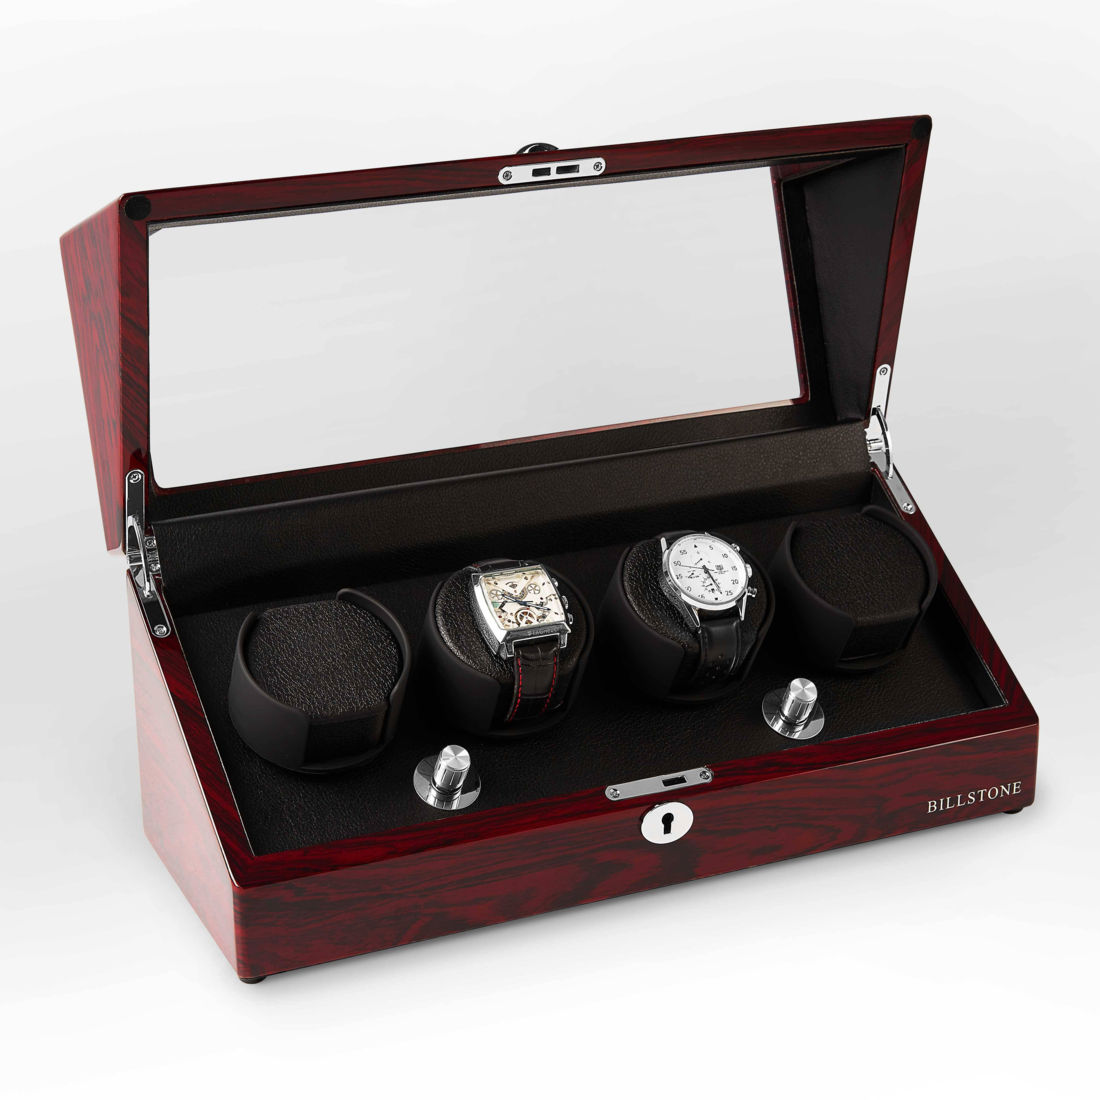 Index Of Assets Gm Billstone Prestige 3 Watch Winder For 6 Watches Collector 4 Rosewood